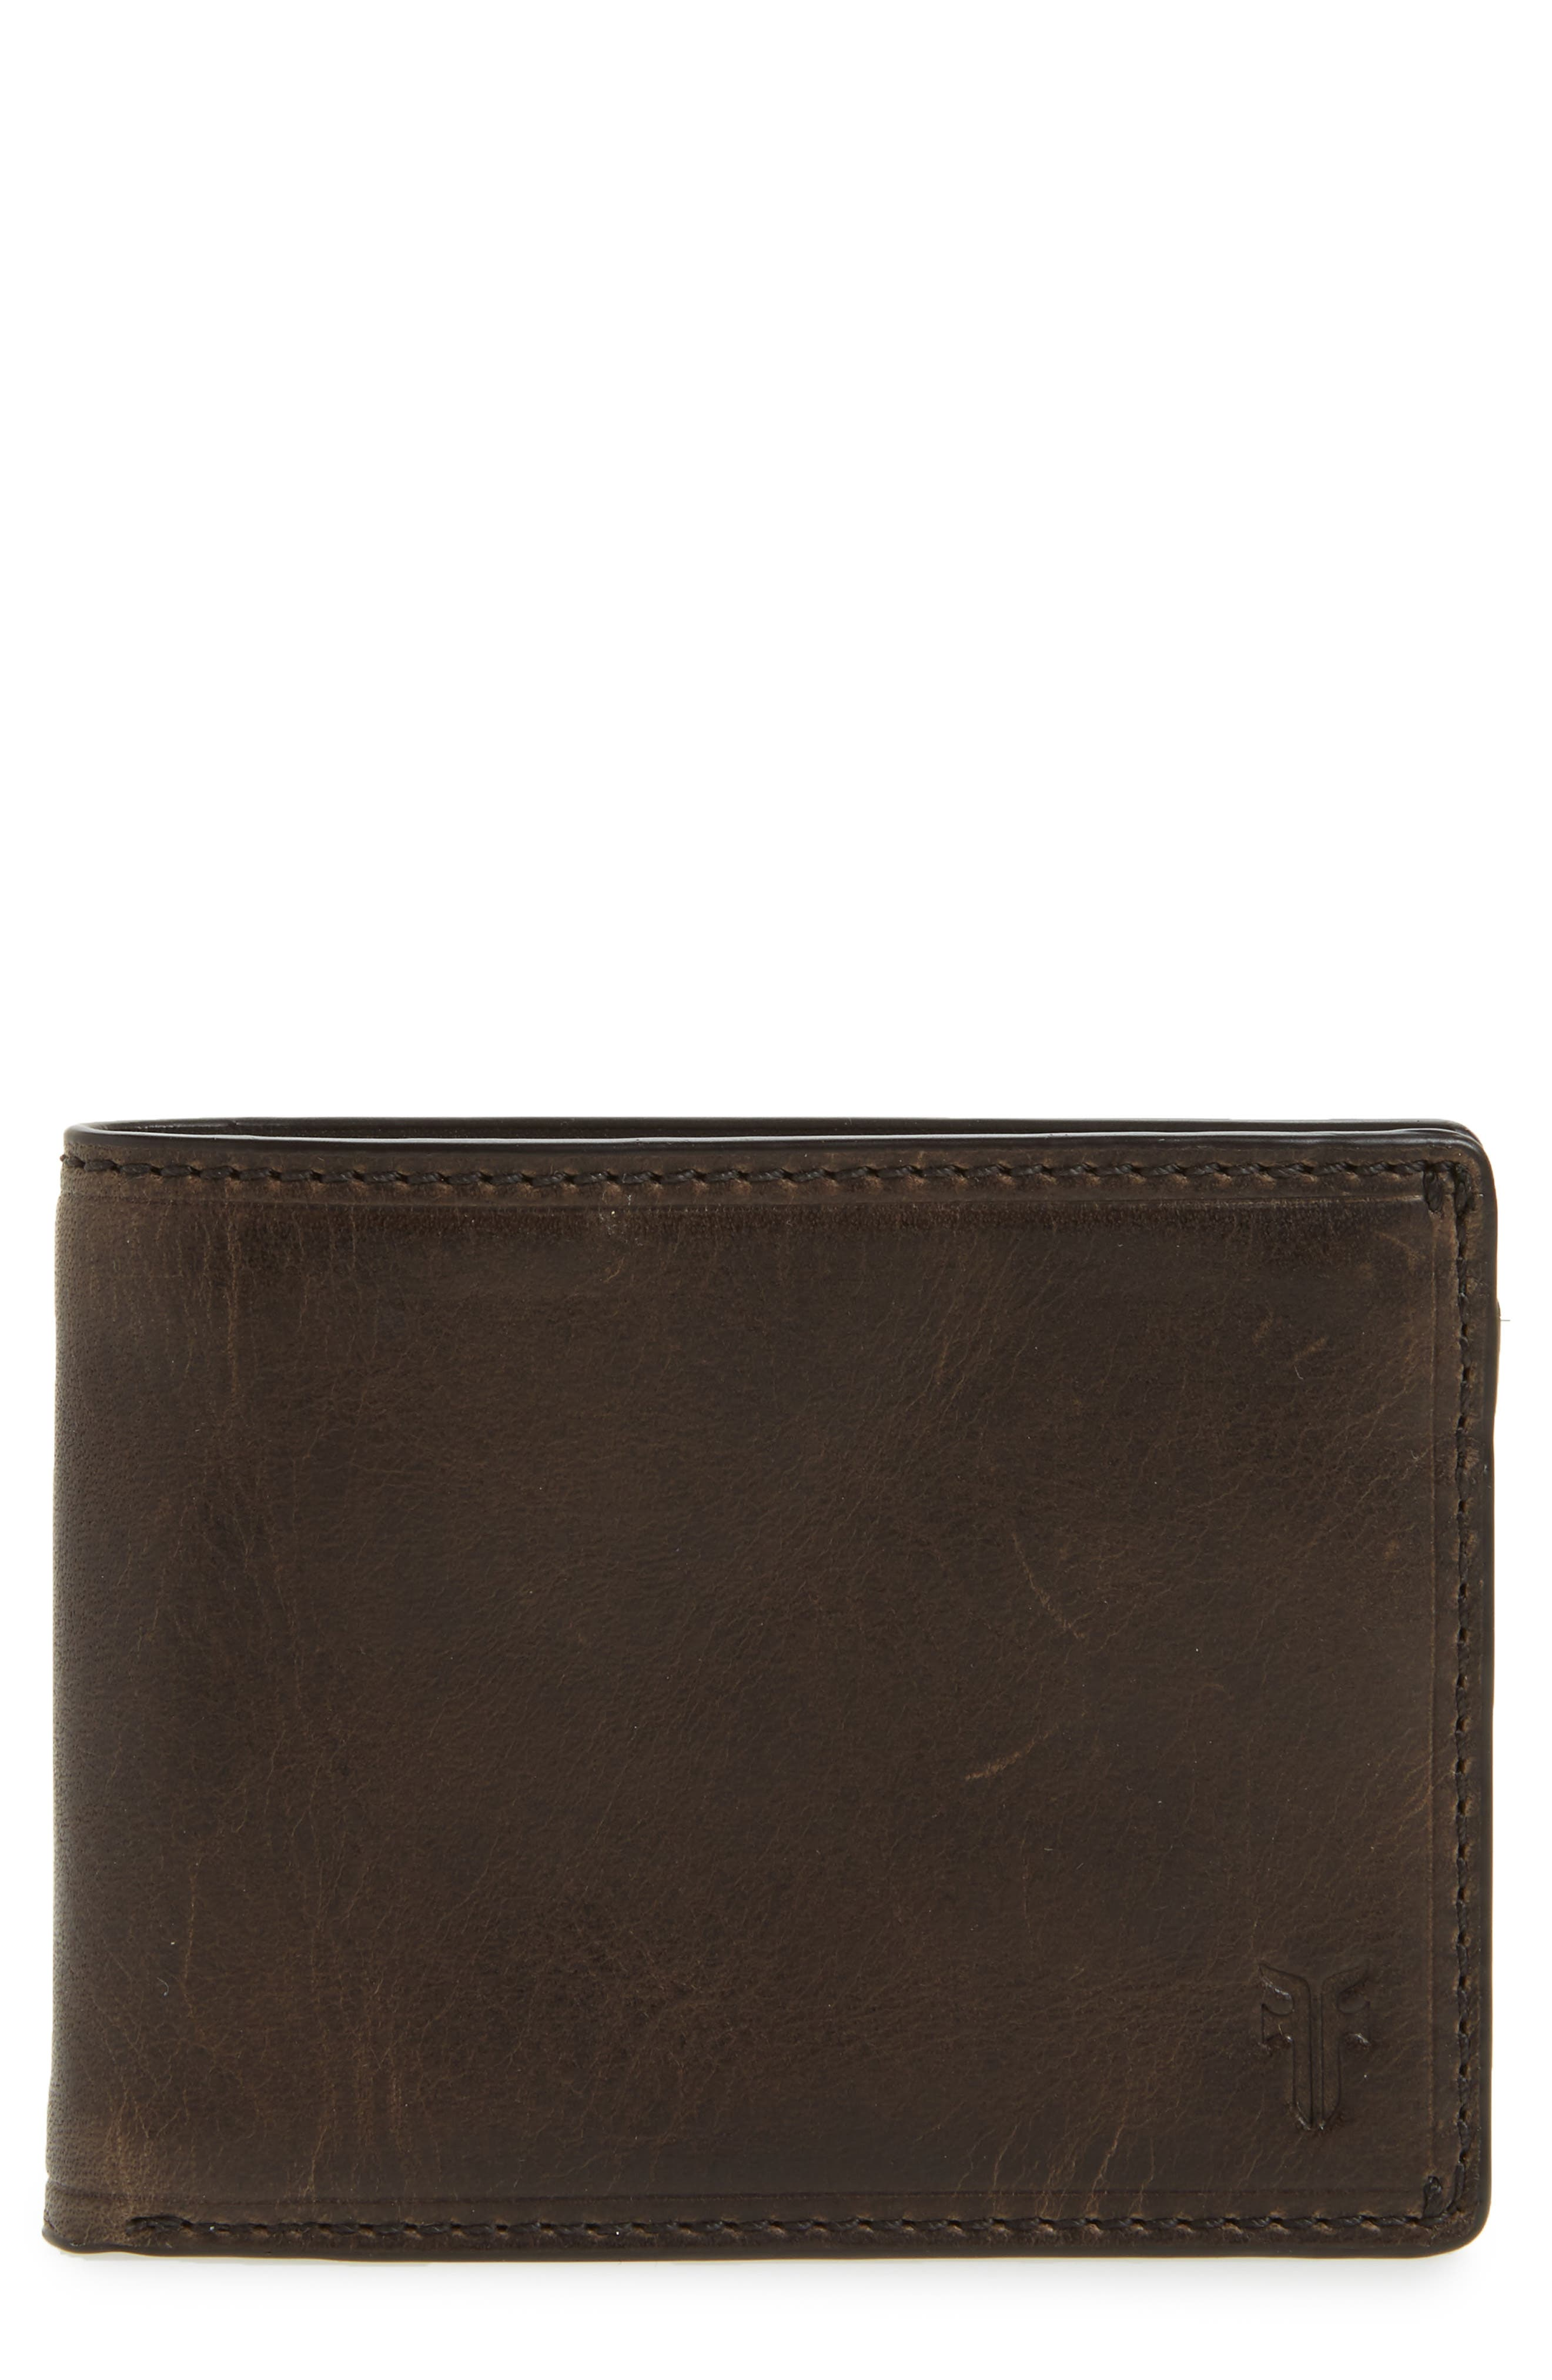 Logan Leather Wallet,                             Main thumbnail 1, color,                             SLATE